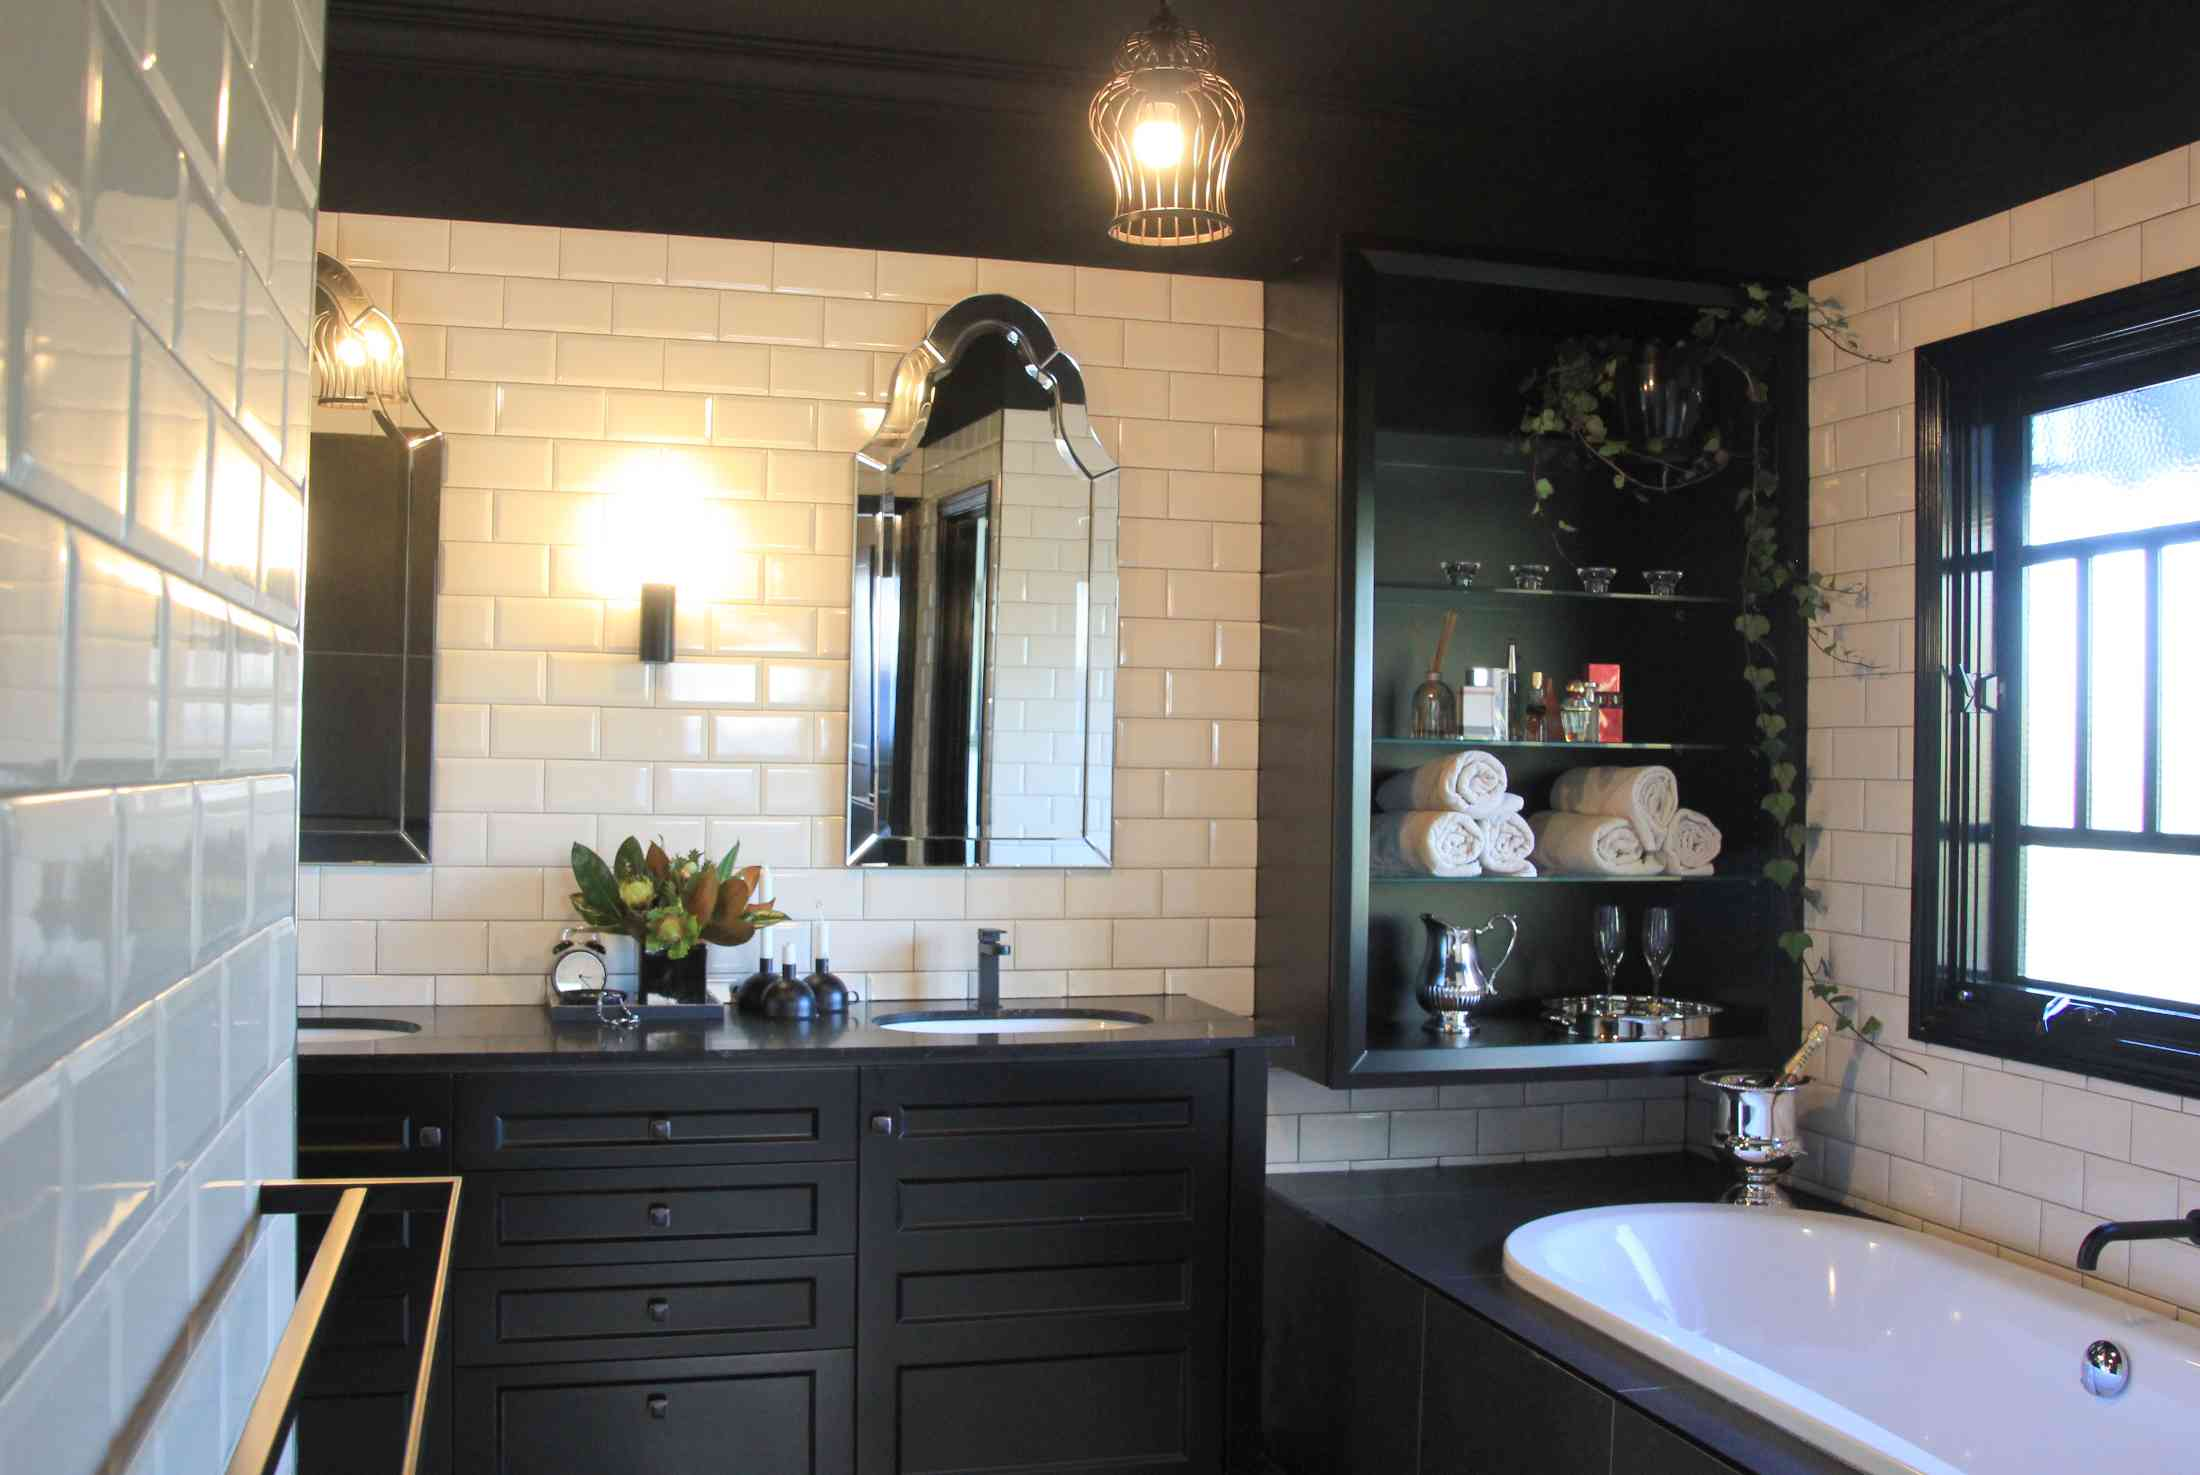 New Master en-suite bathroom with black ceiling & cabinets and subway tiles